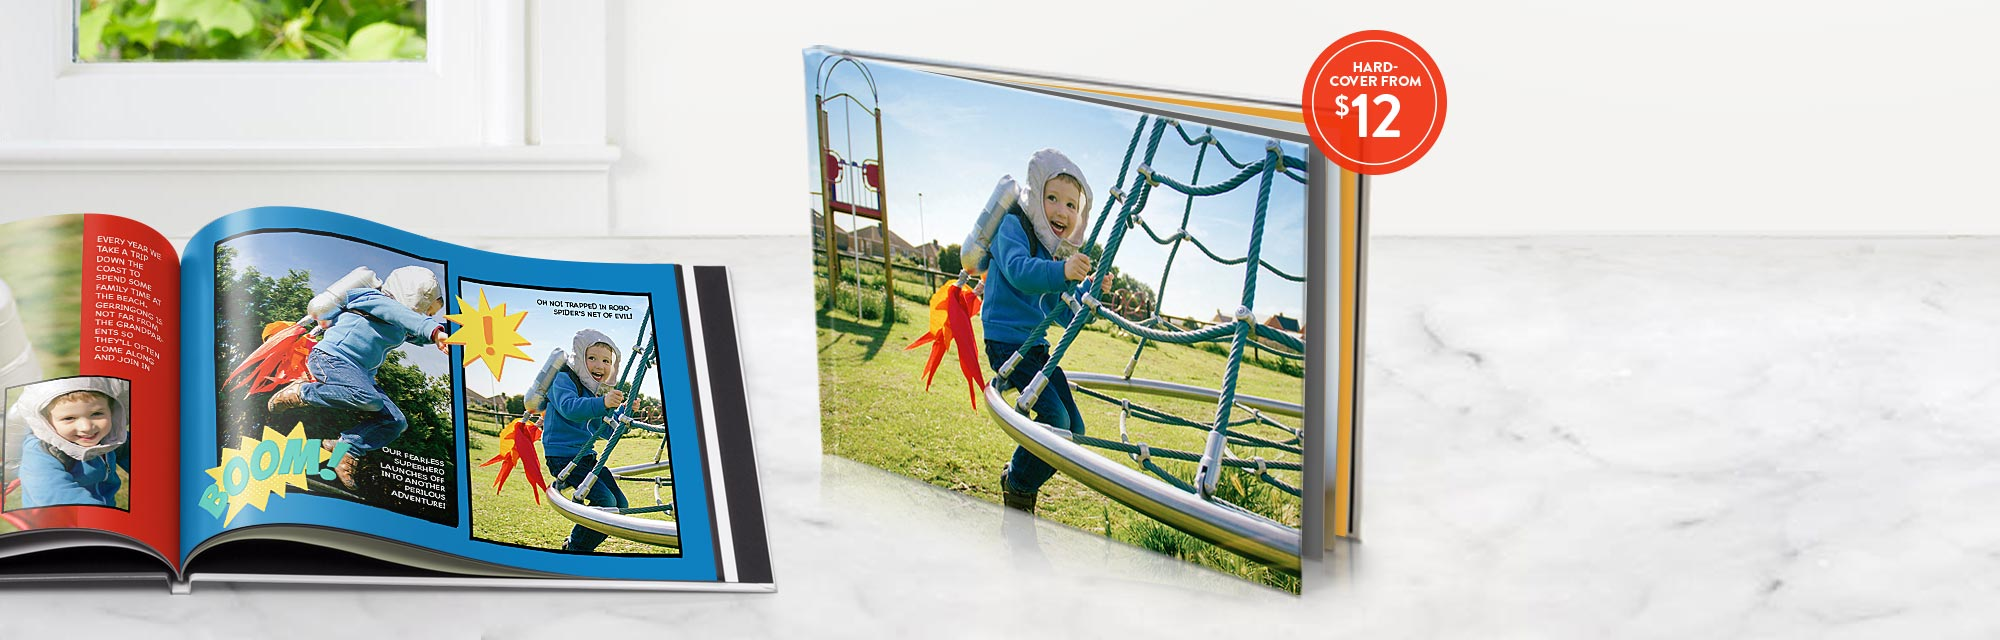 Up up and away : 60% off all photobooks with SUPER60*Excludes additional pagesOffer ends 3/10View Terms & Conditions